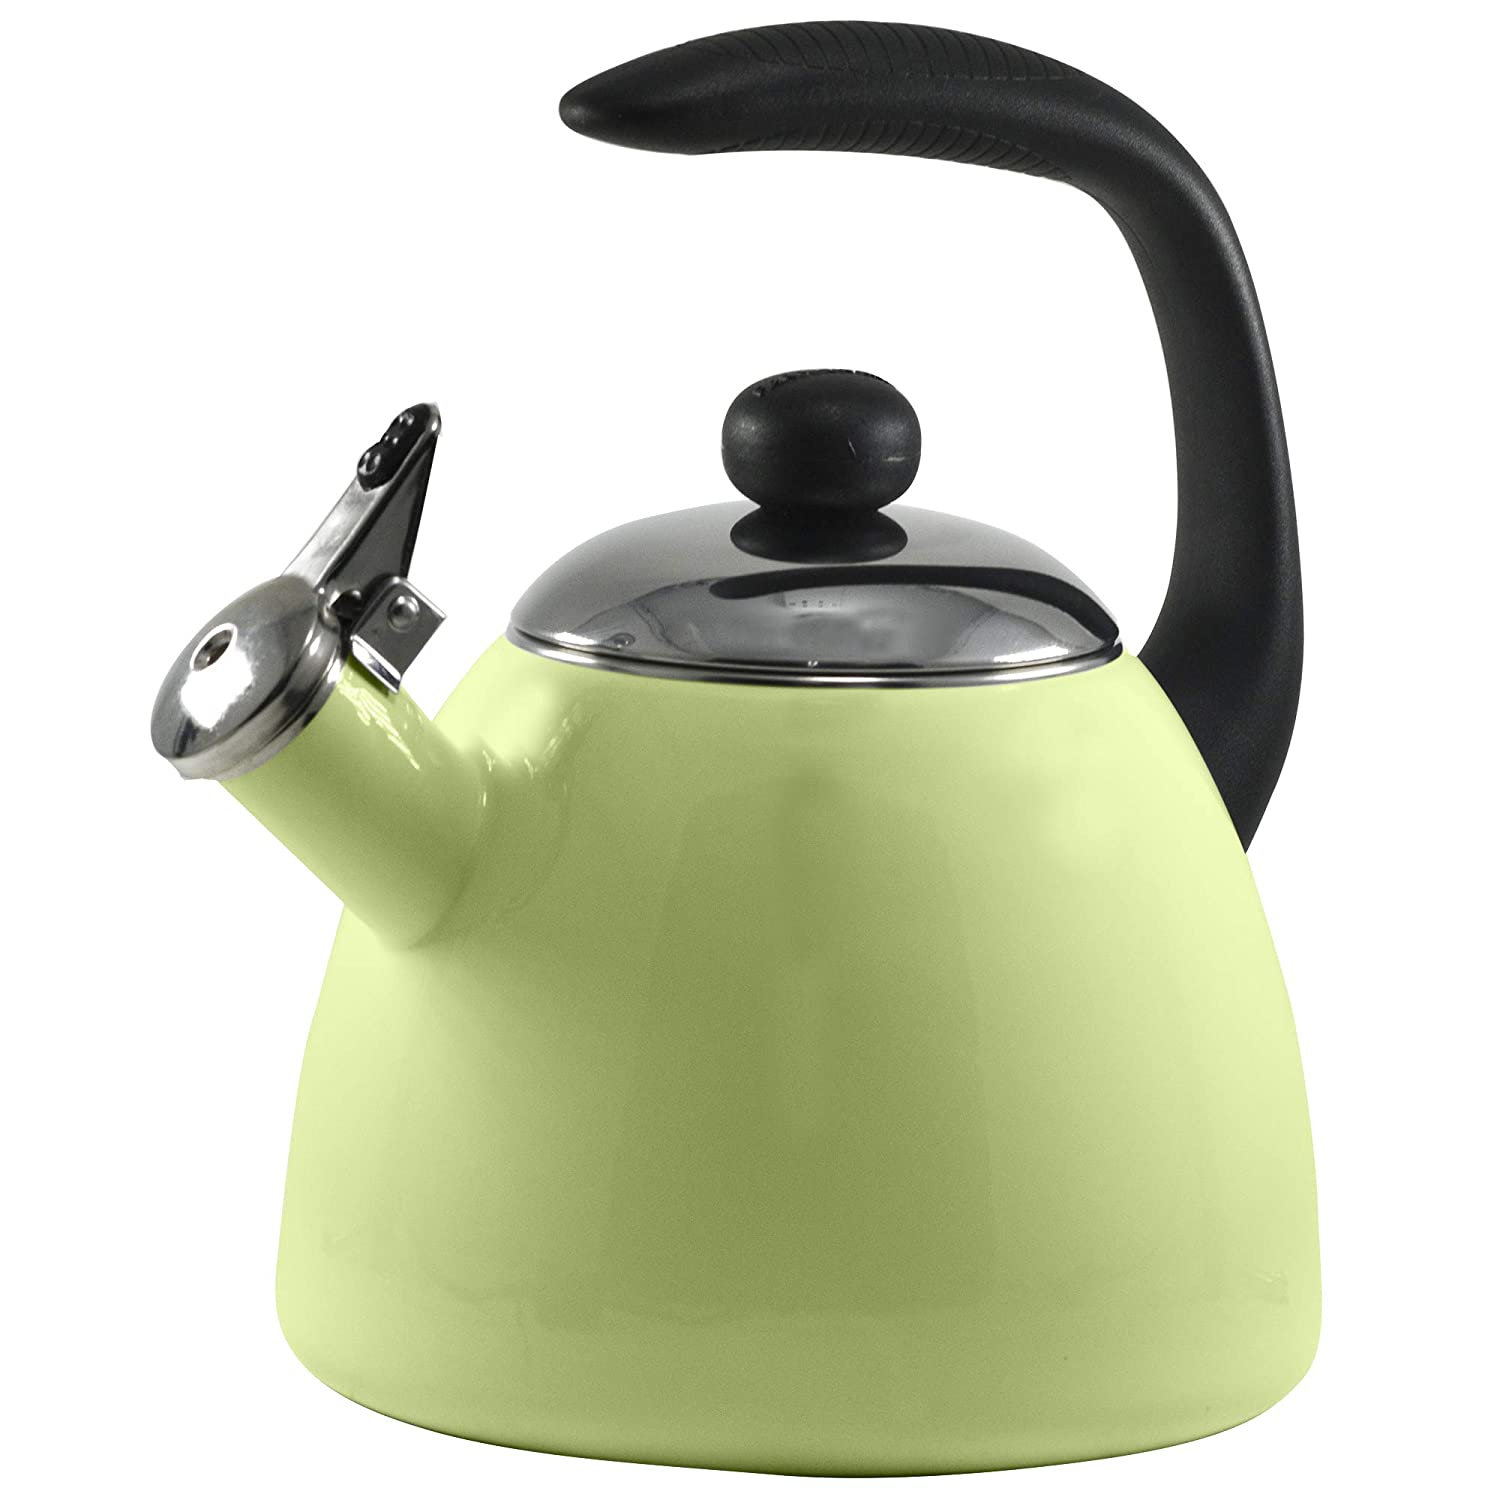 2.5 Quart Tea Kettle, Stove Top Food Grade 18/8 Stainless Steel Water Kettles Audible Whistling Anti- Hot and Anti-Rust Teapots Porcelain Enamel Cooktop Pot with Soft Grip C Handle (Granny Apple)